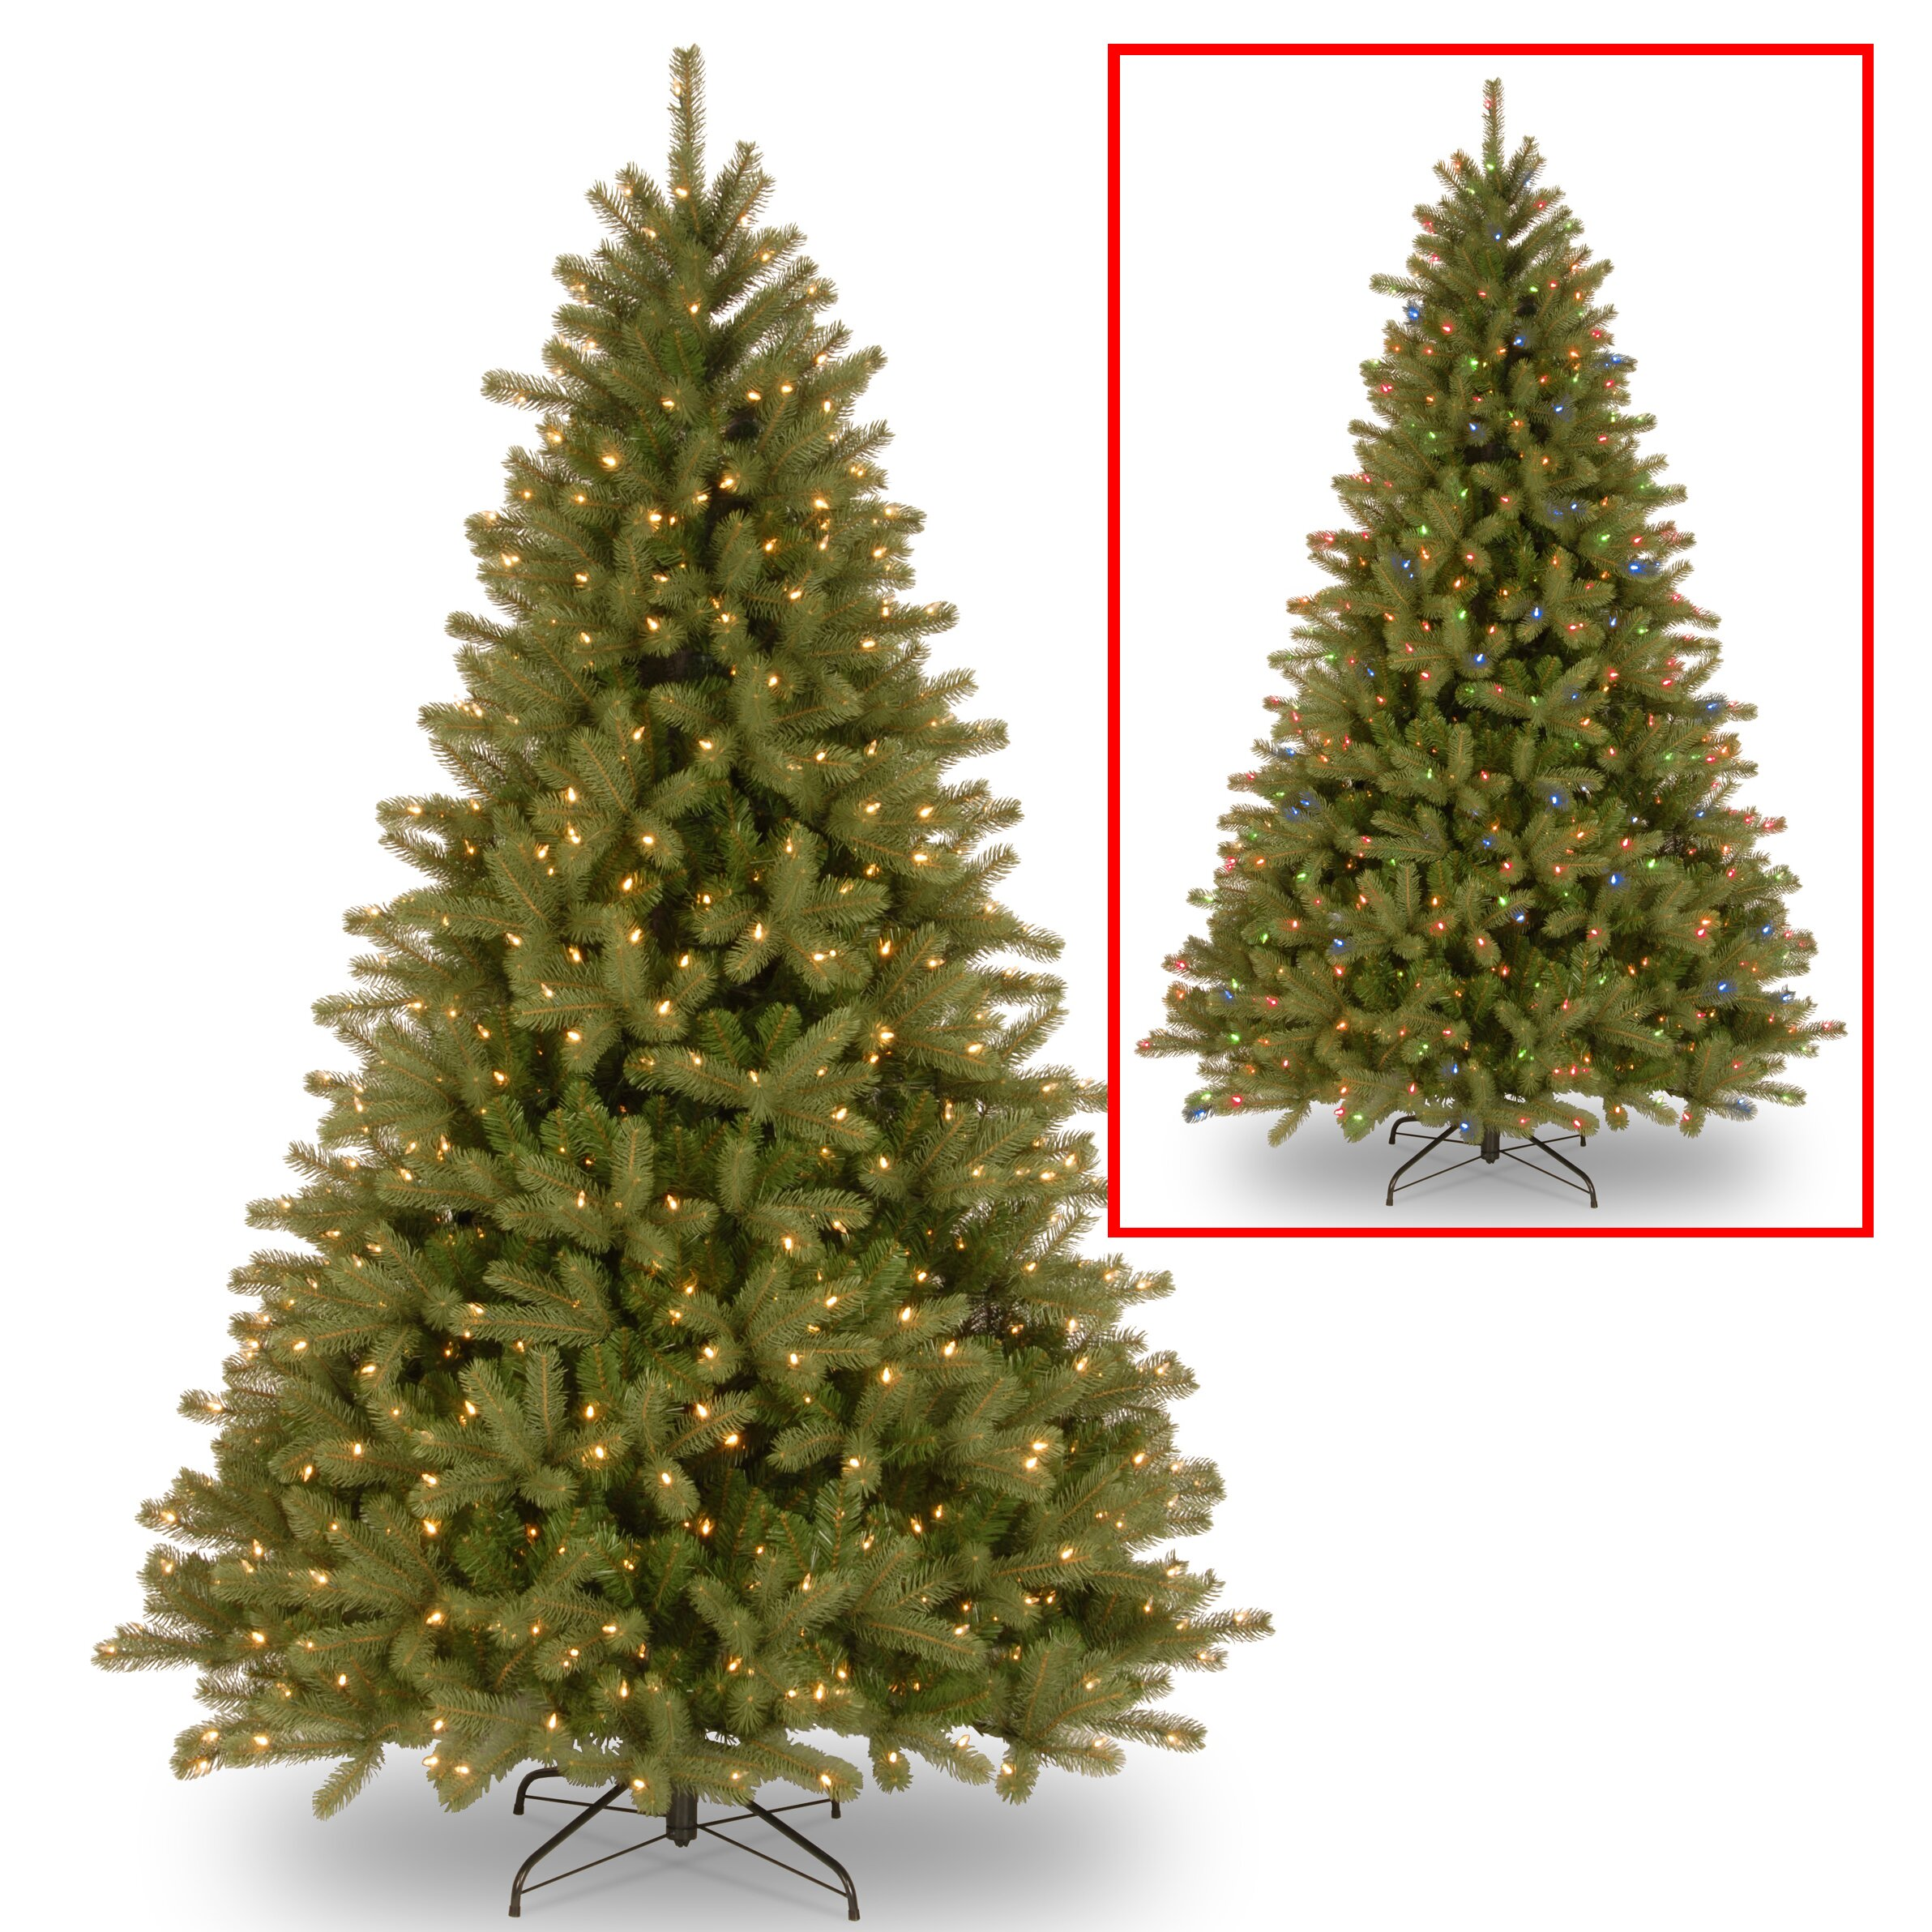 7 ft pre lit led christmas tree - National Tree Co Lakewood 7 5 Green Spruce Artificial Christmas Tree With 700 Dual Color Reg